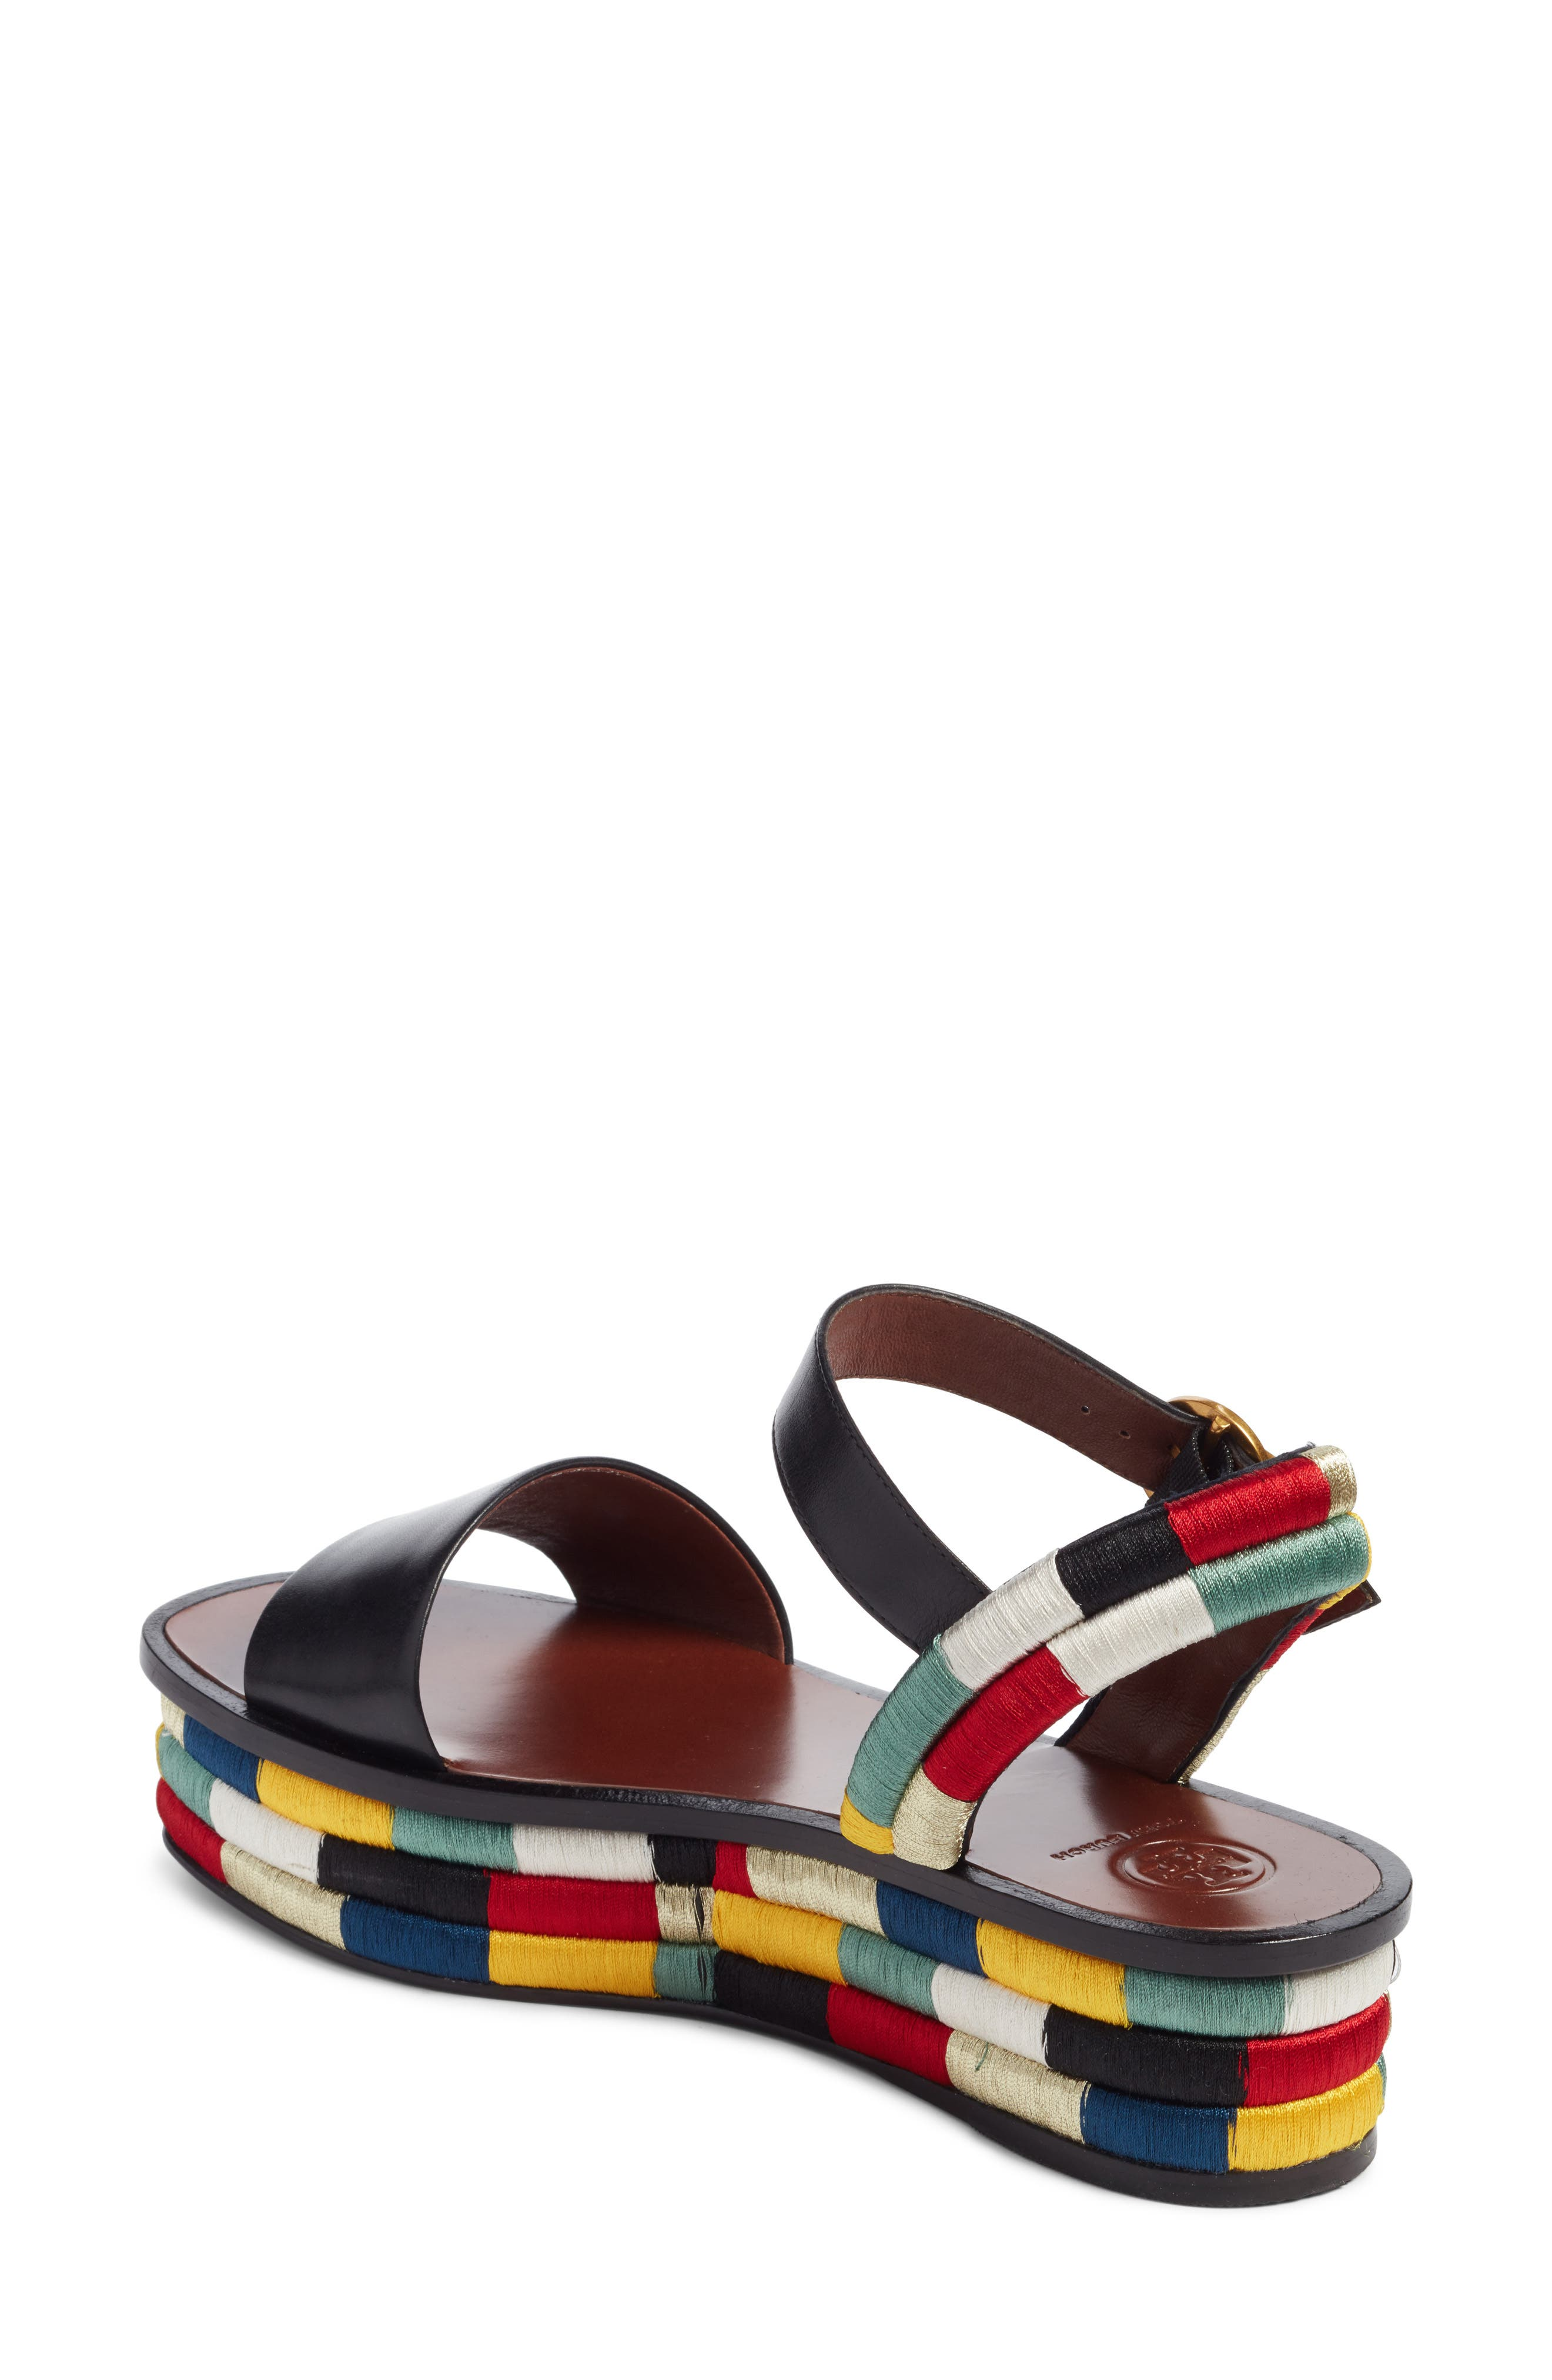 Camilla Platform Sandal,                             Alternate thumbnail 2, color,                             001